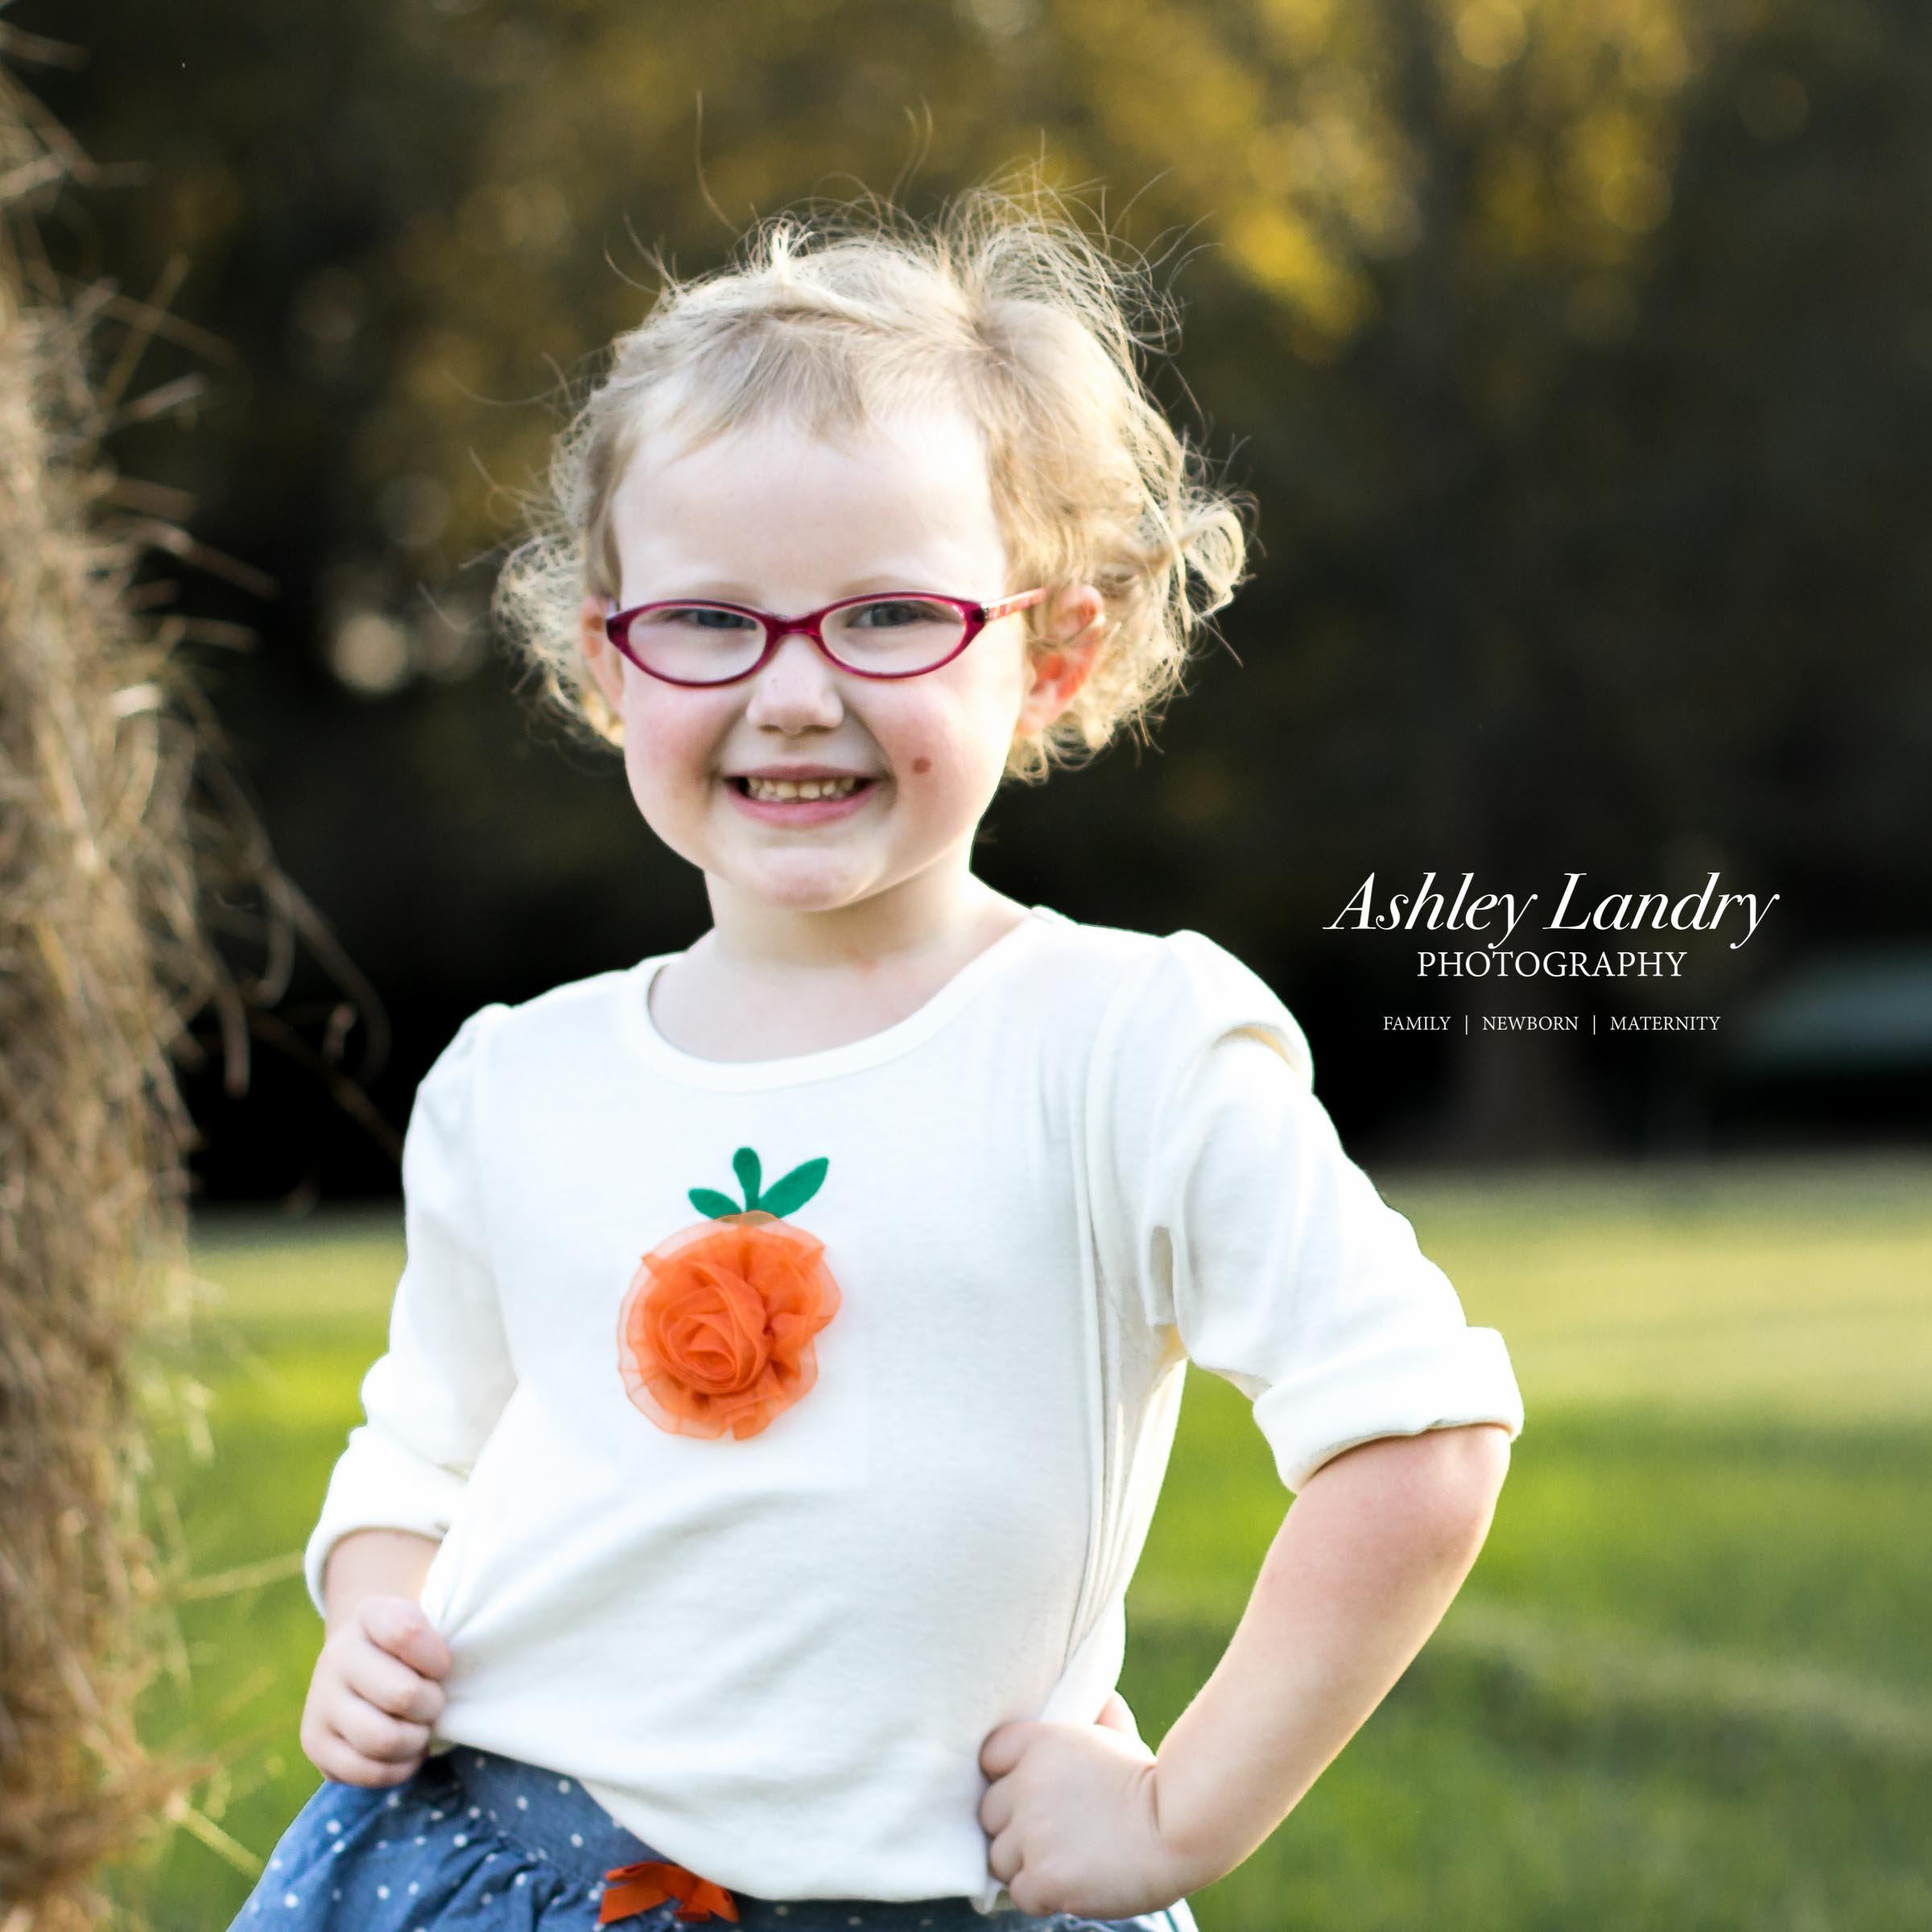 ashley-landry-photography-social-media-6-2-42-44-pm